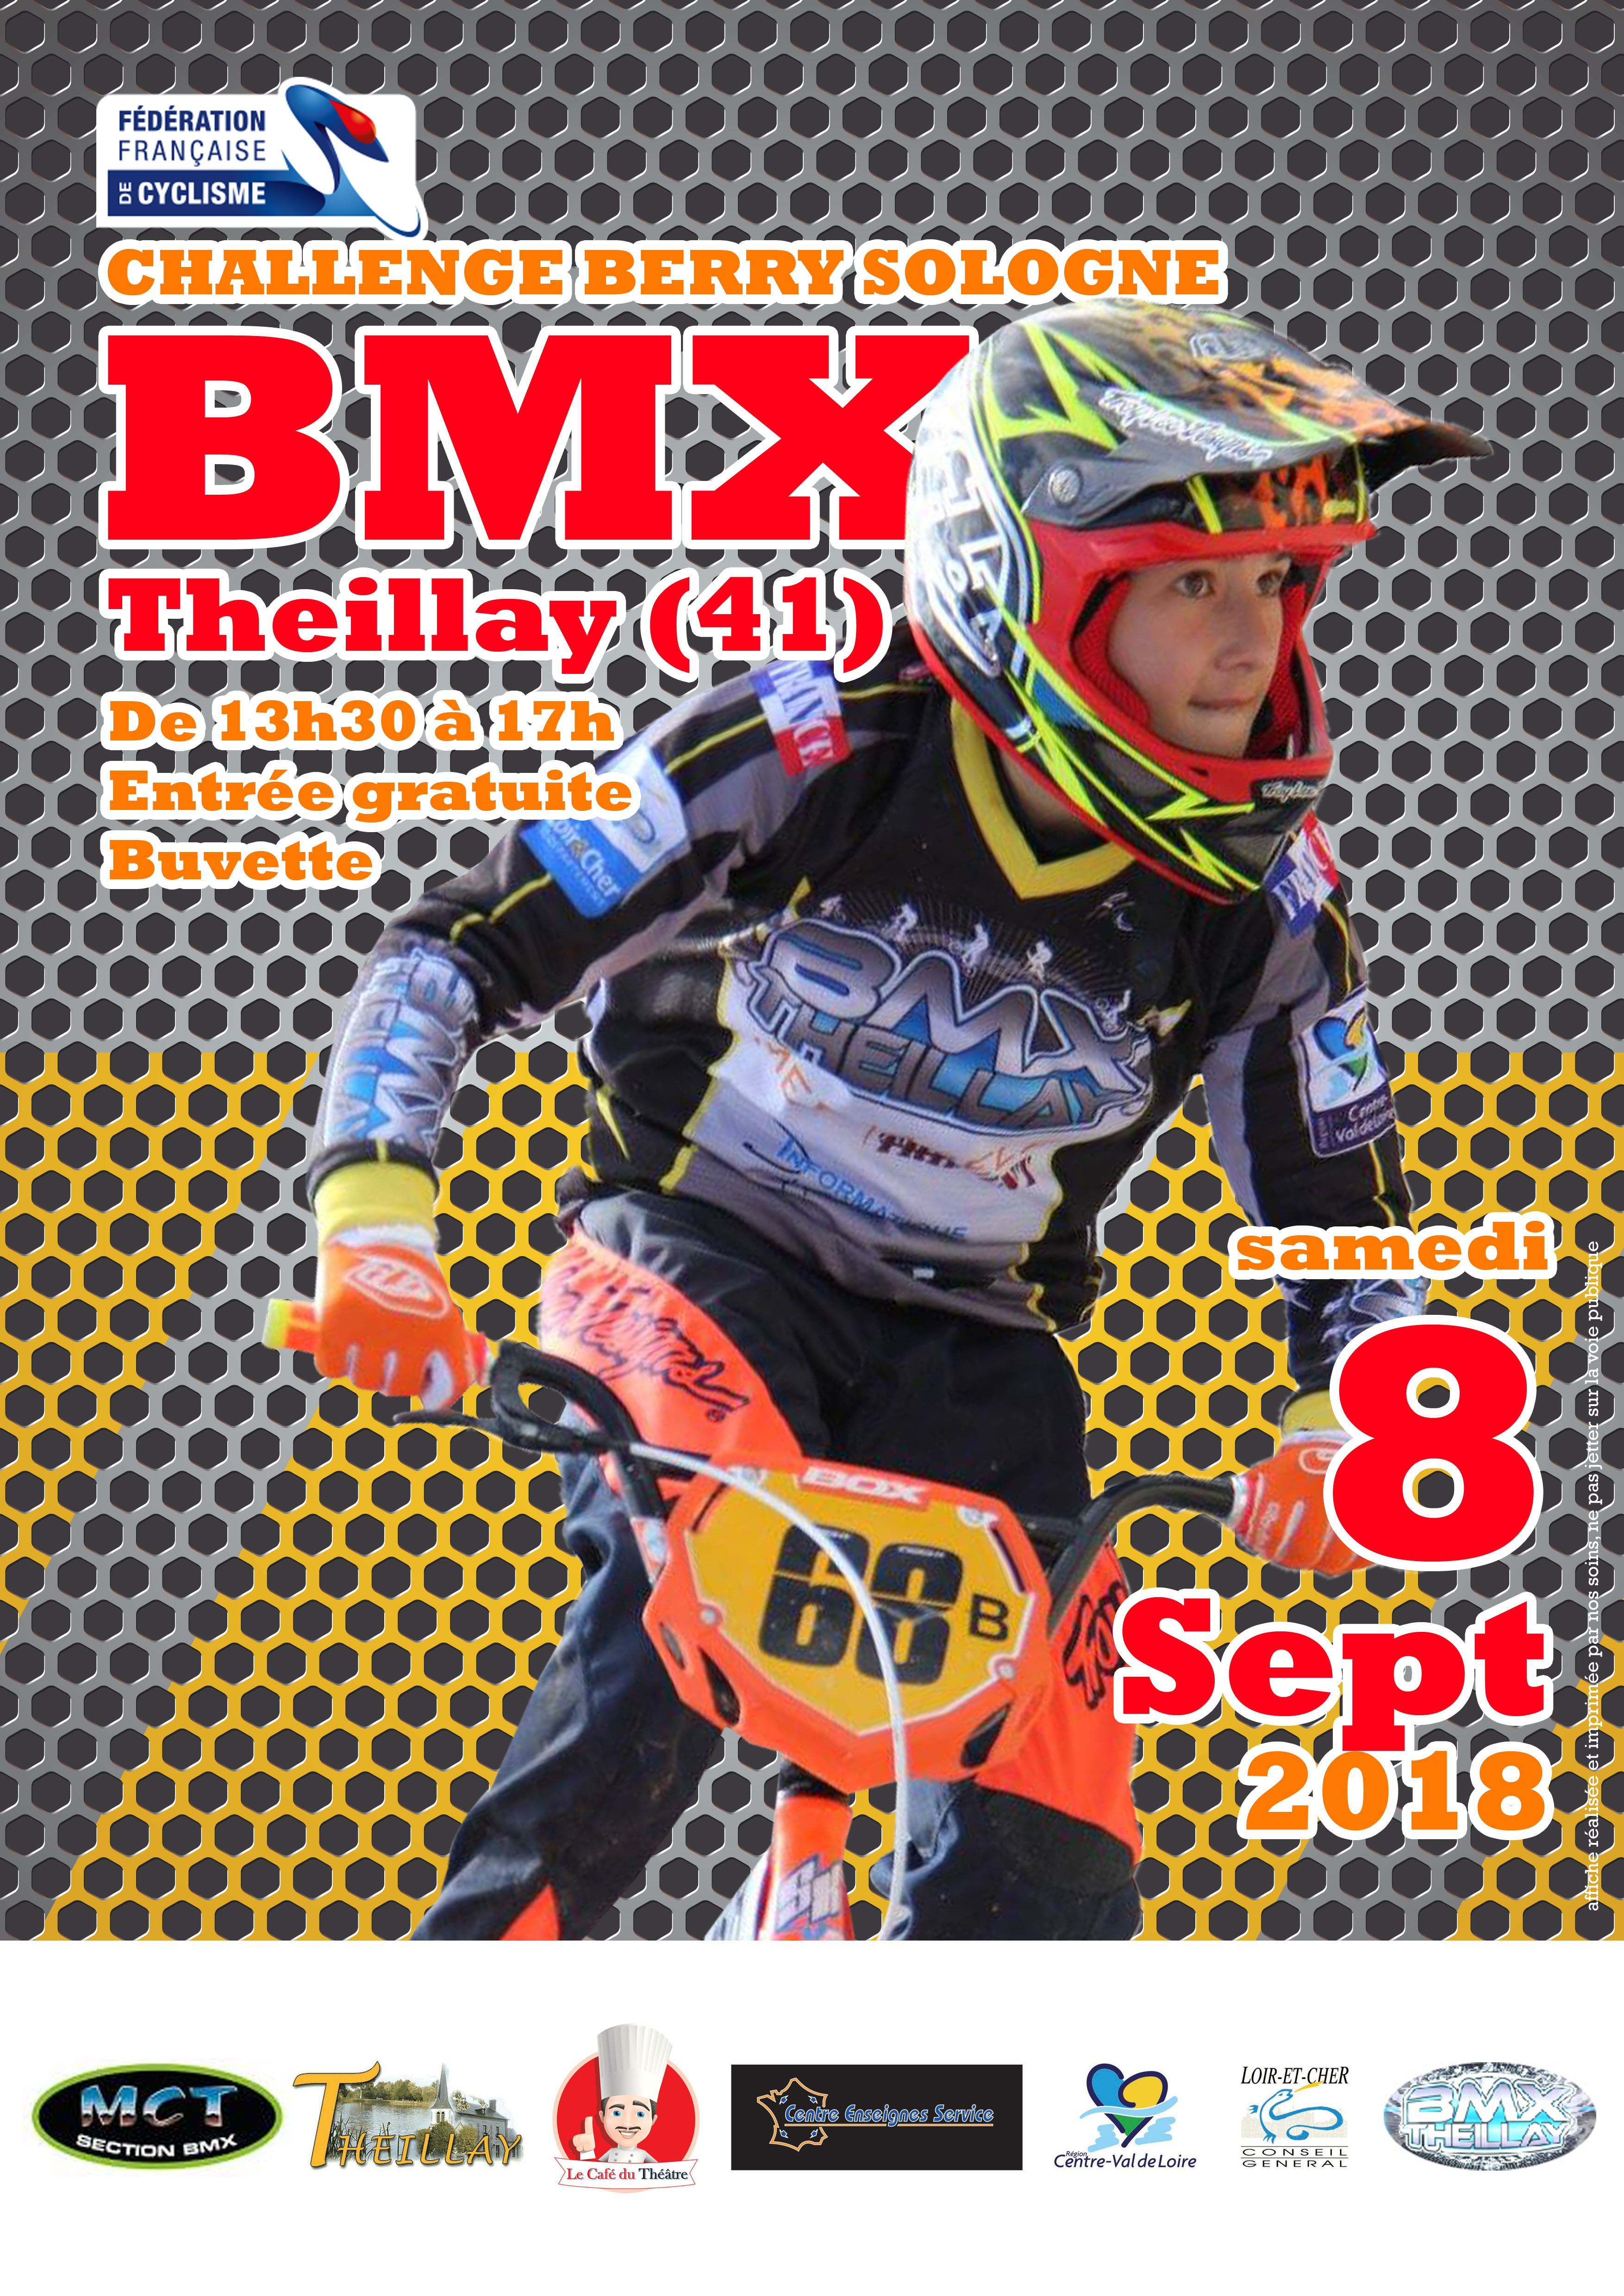 Challenge_Berry-Sologne_Theillay_08092018